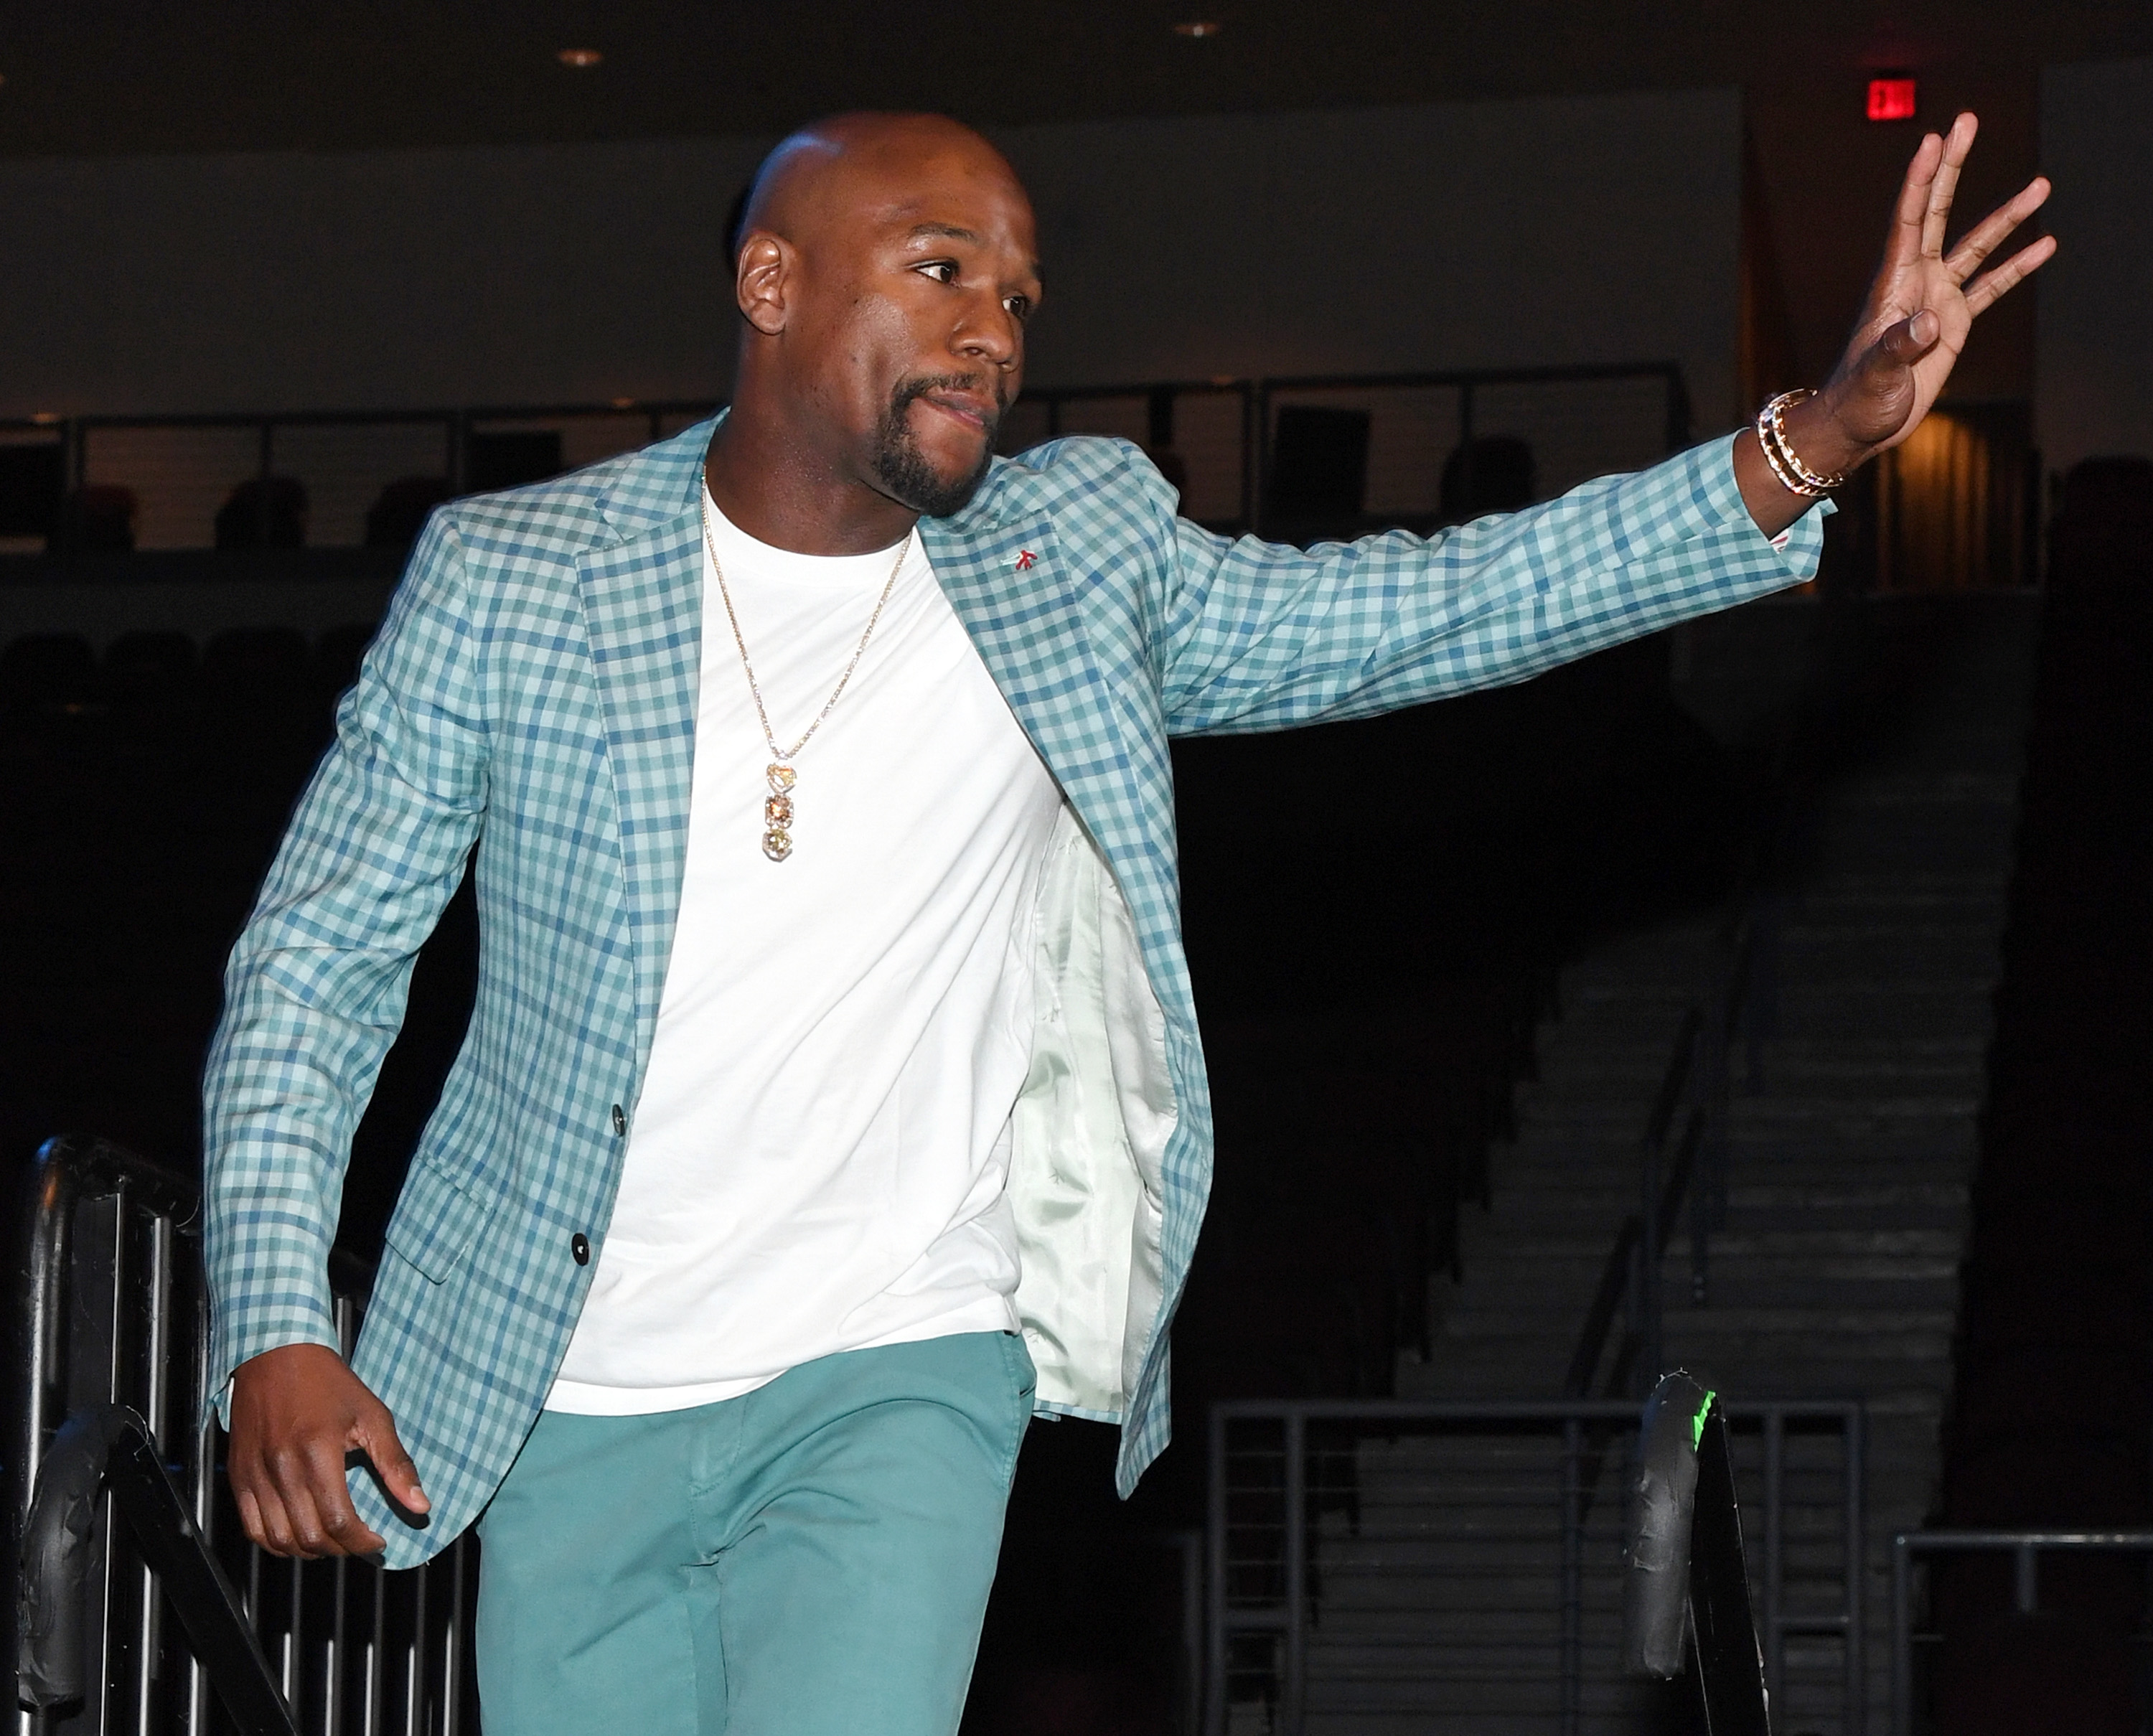 Floyd Mayweather Jr. is inducted into the Southern Nevada Sports Hall of Fame in 2017